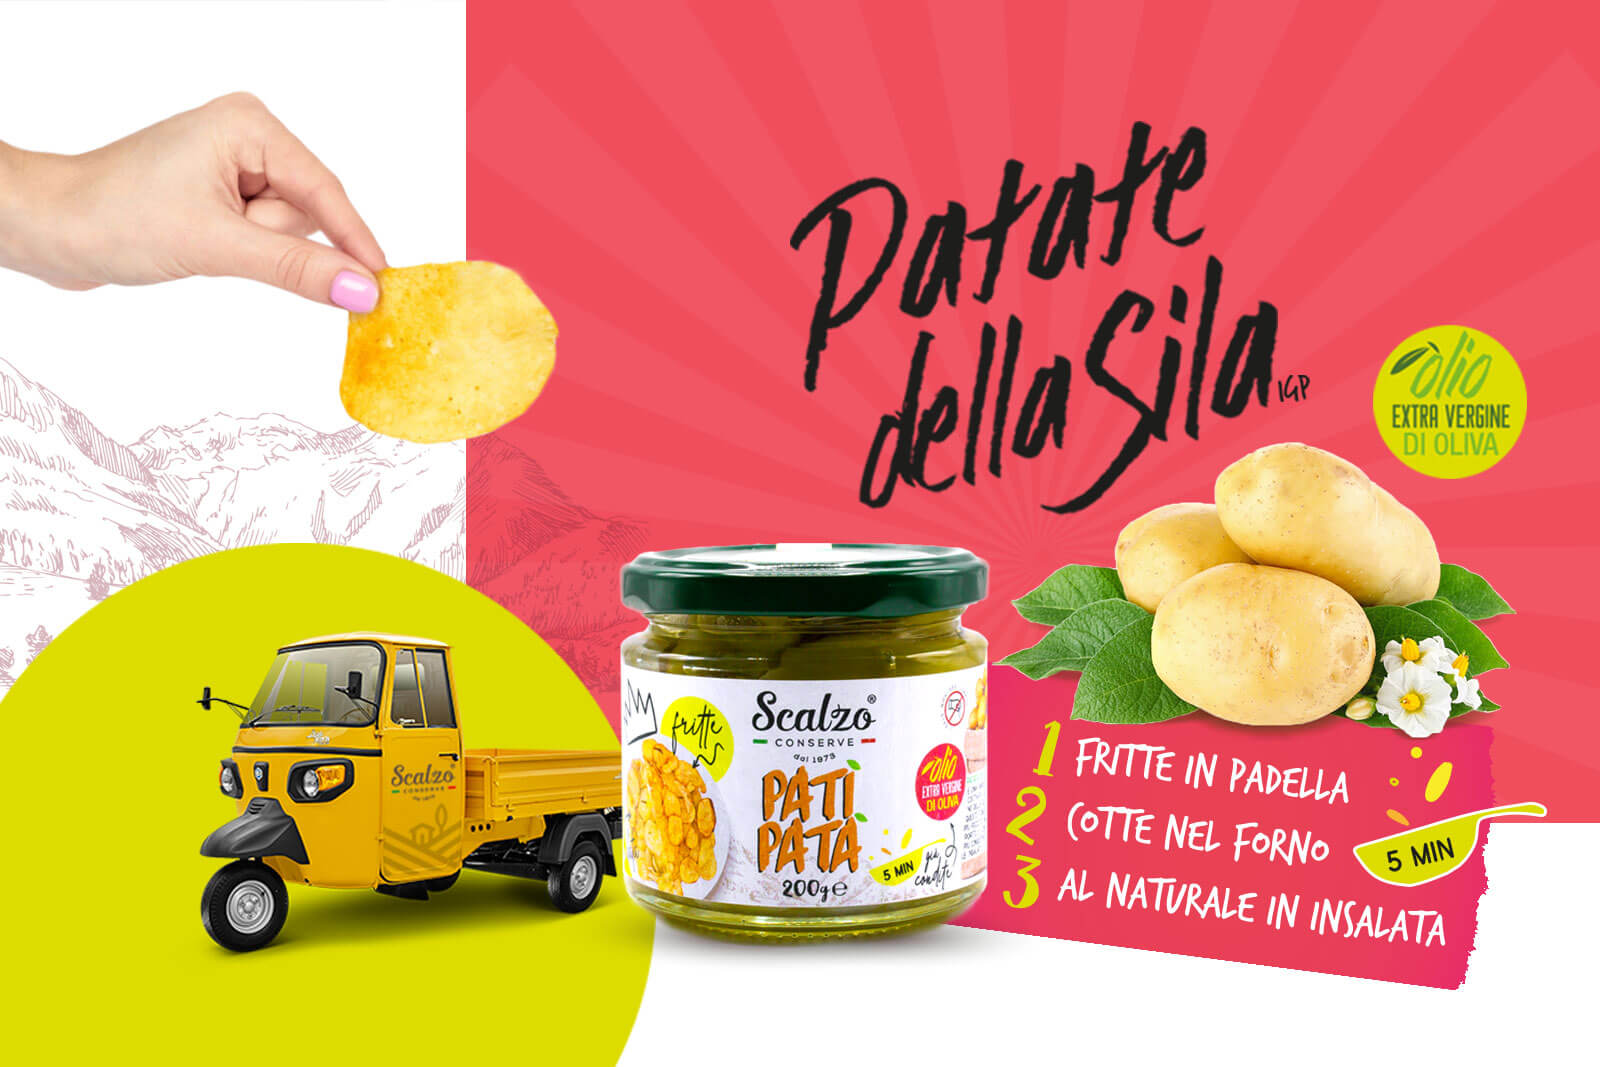 Patì Patà, le chips in vasetto